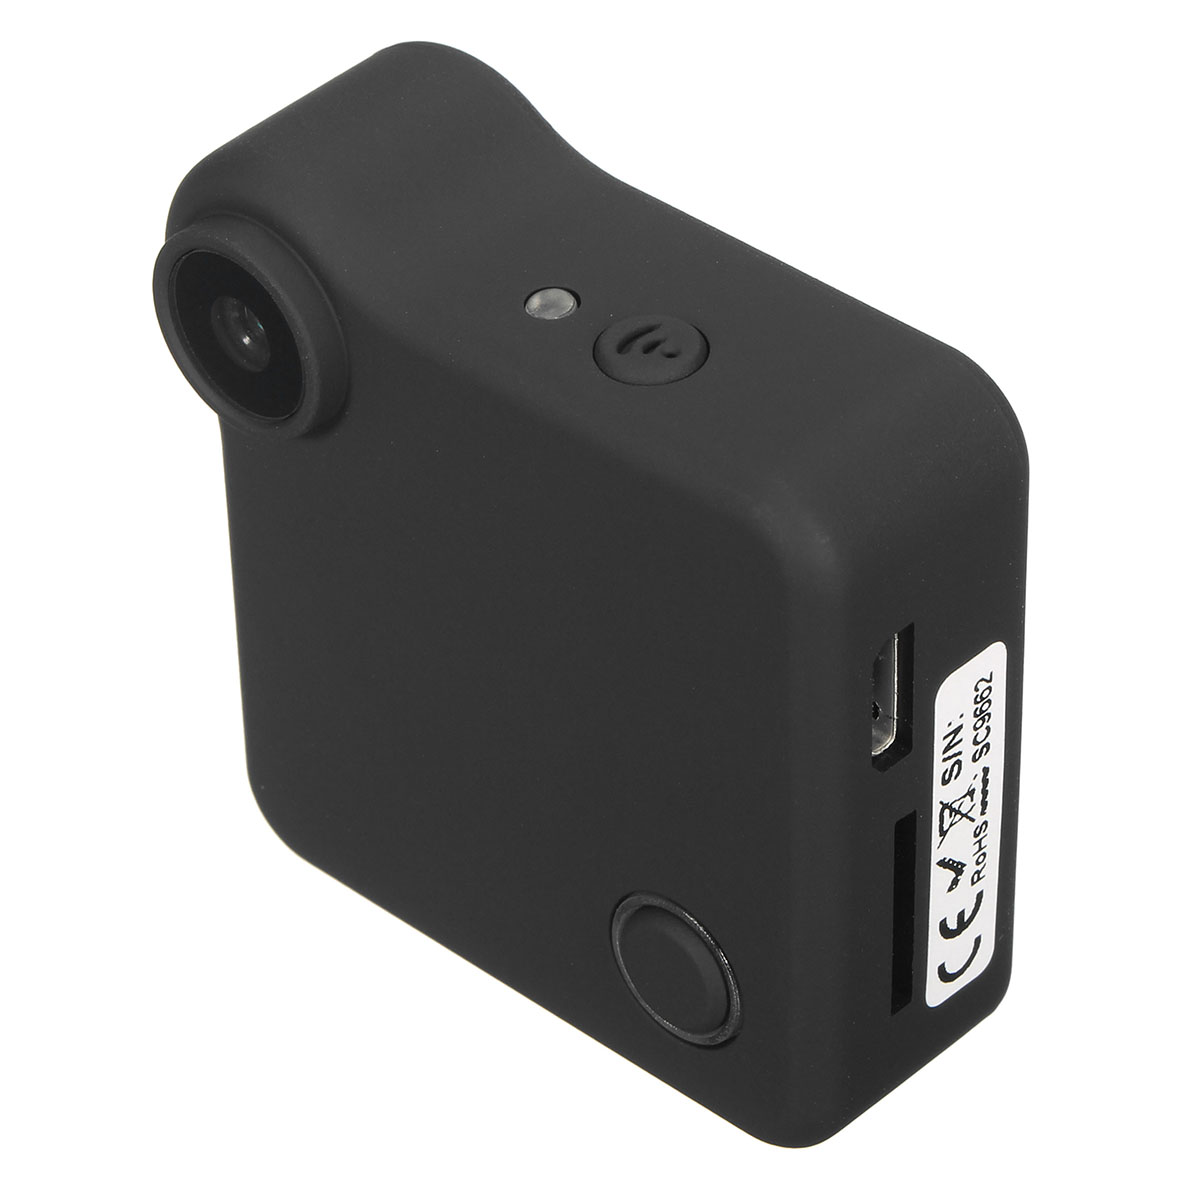 full hd wifi charger camera a1 manual